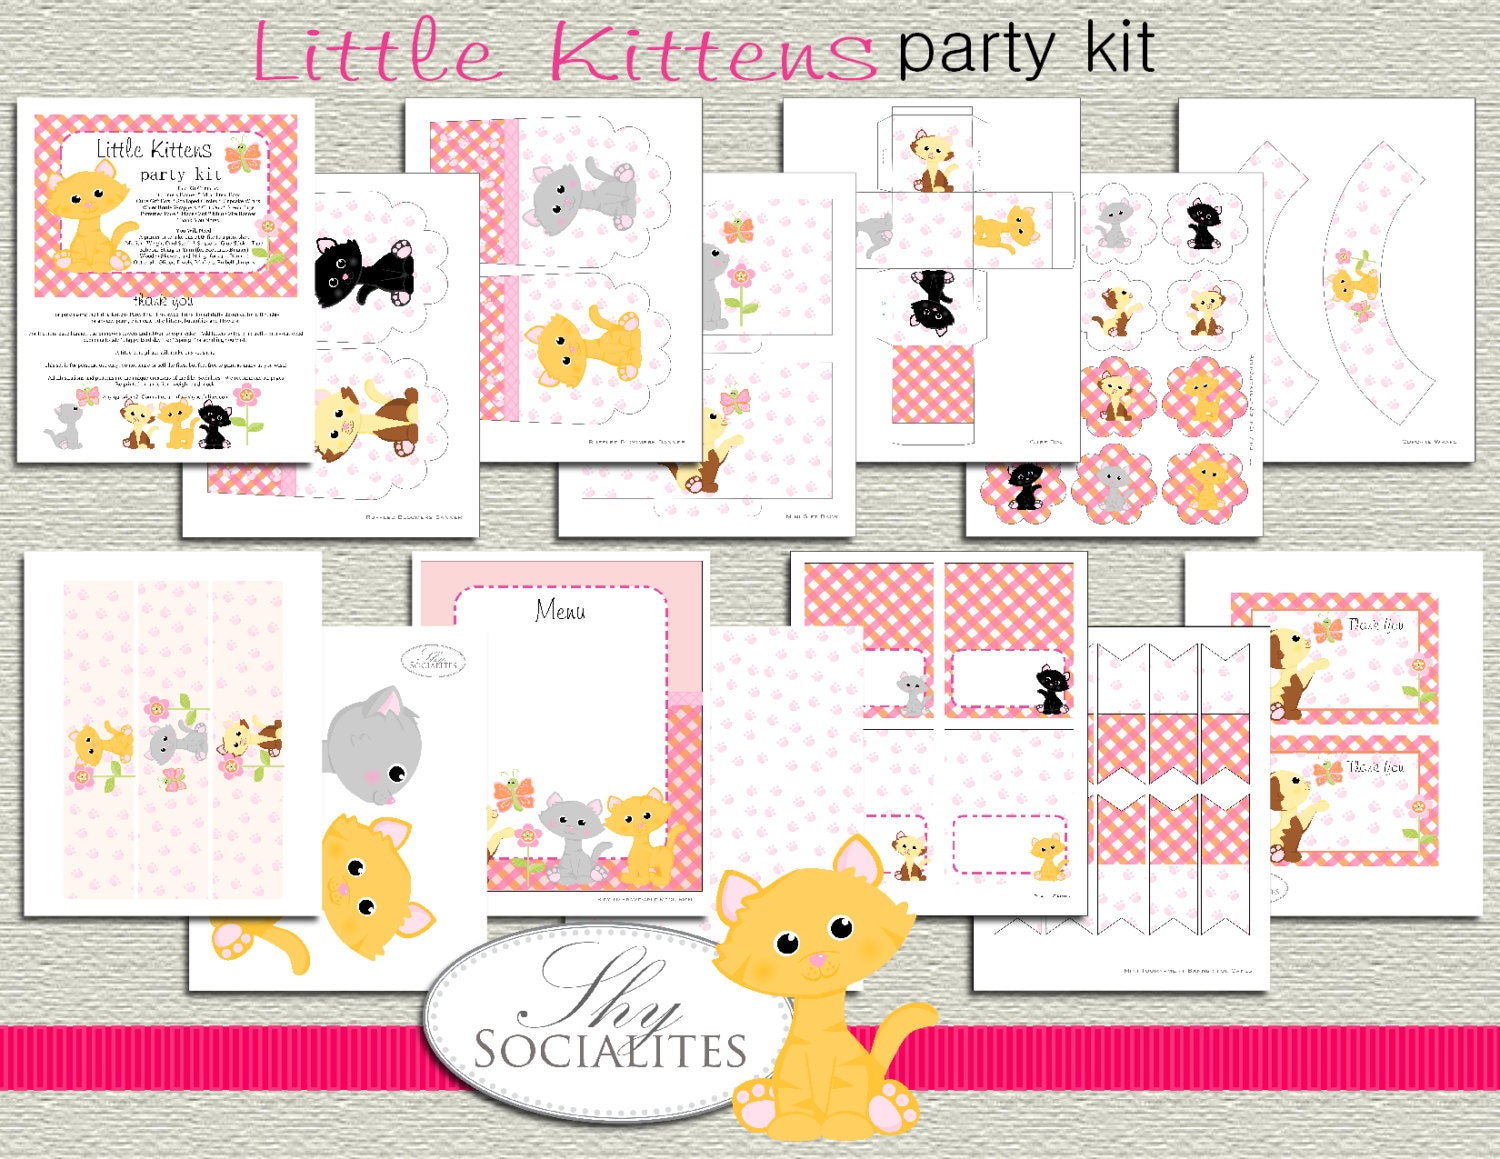 Kitty PDF party Kit Kitten Birthday Party Kitty Birthday